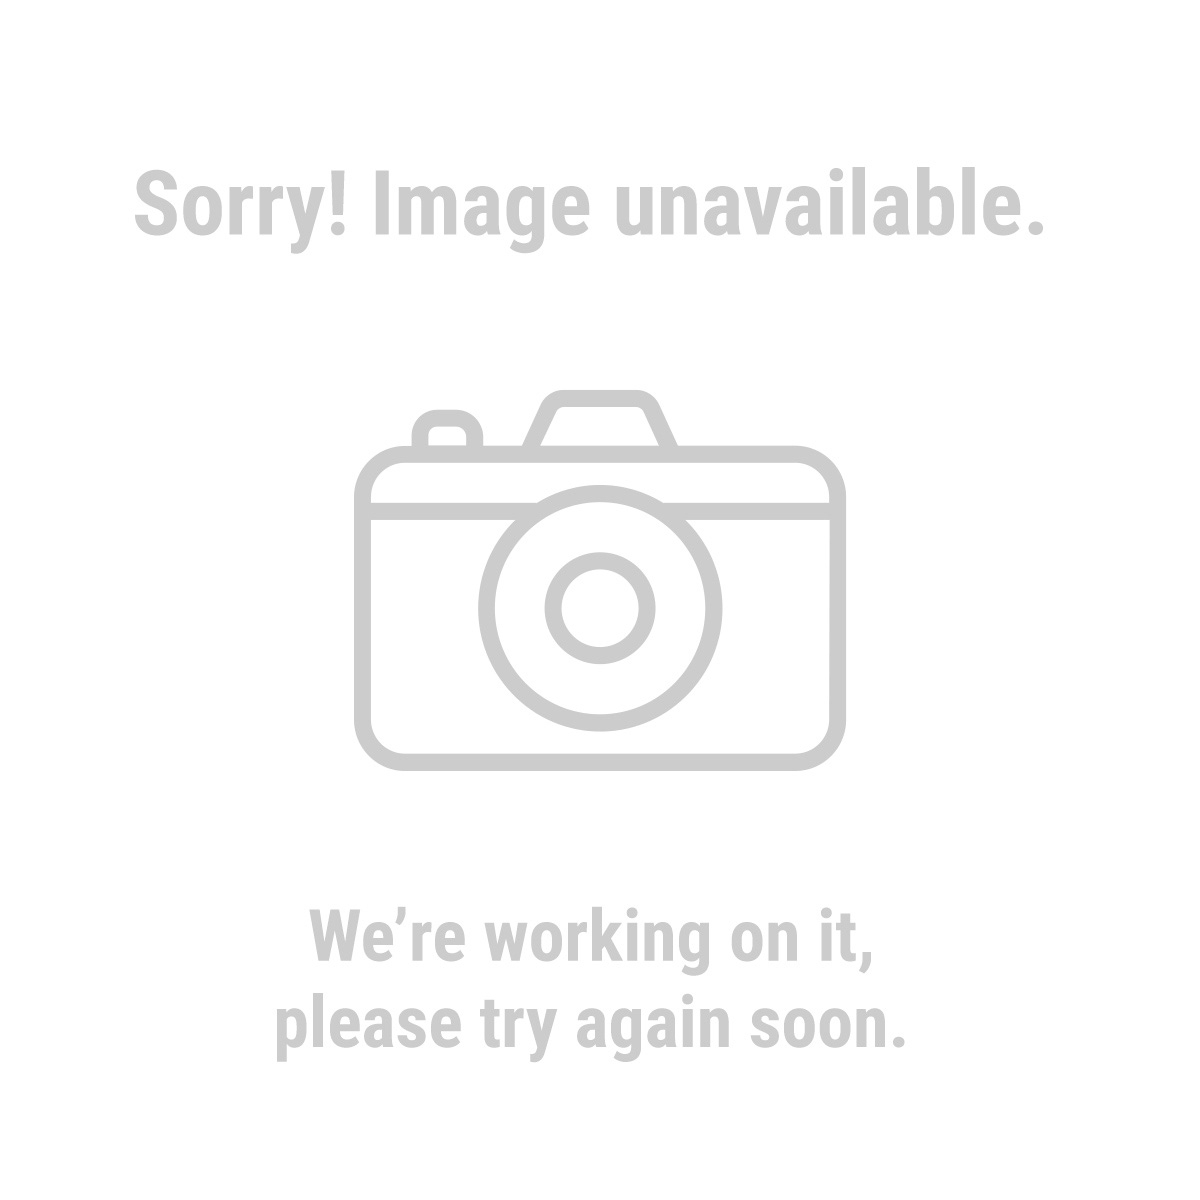 Gorilla 97330 Gorilla Glue Precision Glue Pen with Fast Cure